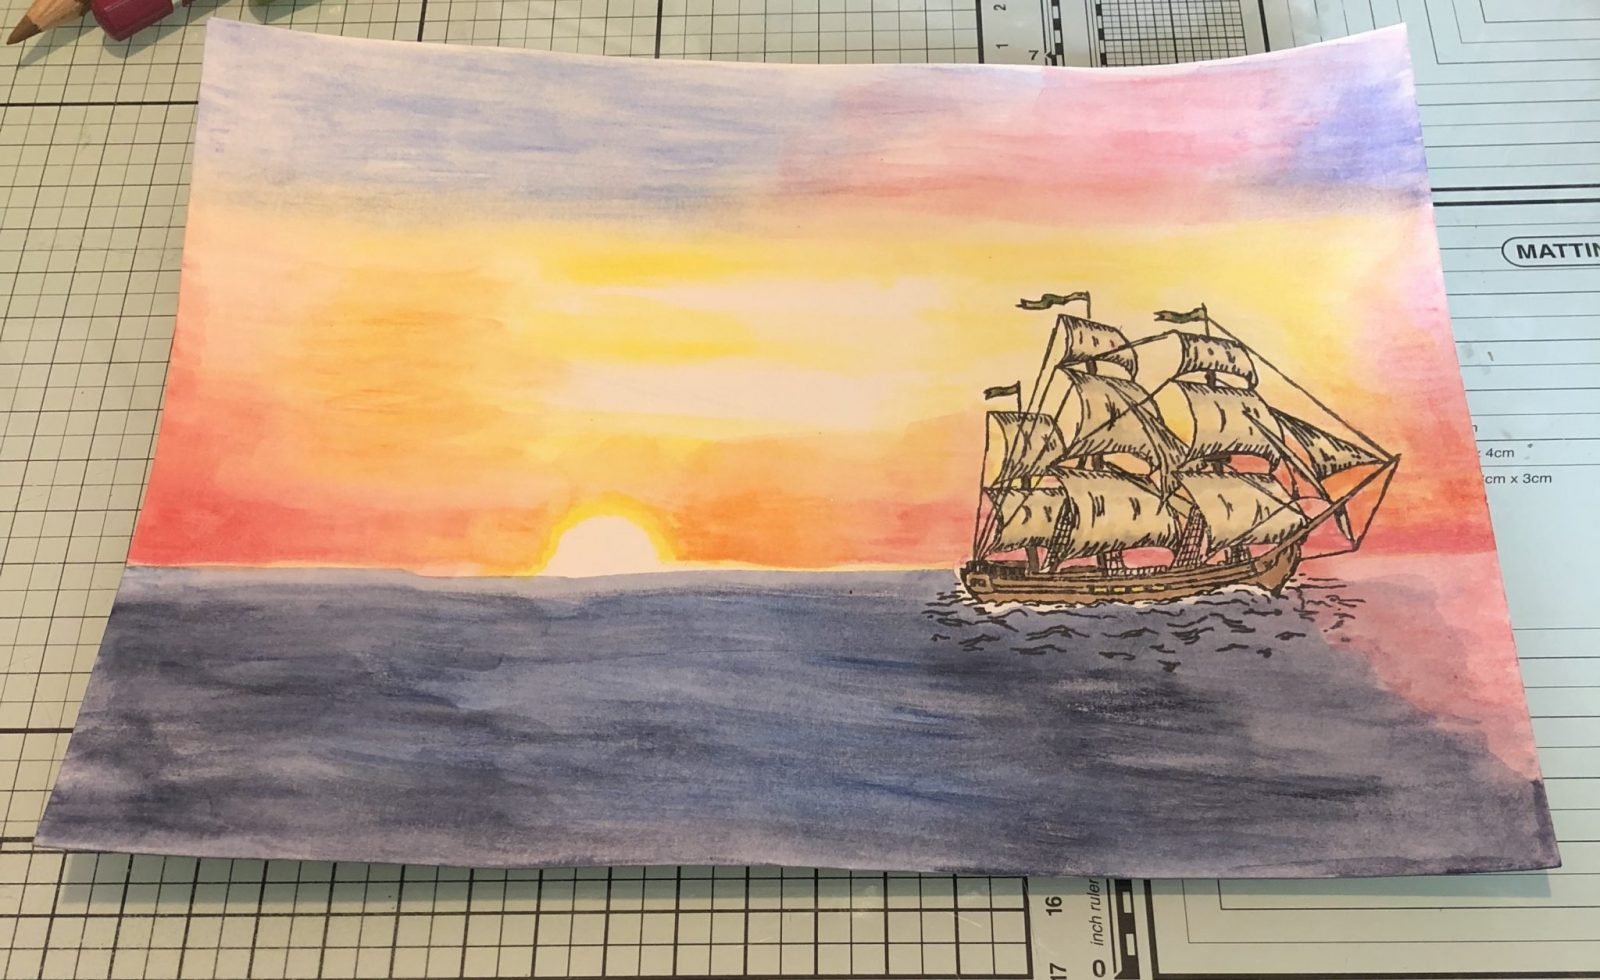 Living Creatively with Fibro | The ship with a watercolour background showing the sea with a sunset, using blues, yellow, orange, pink and red